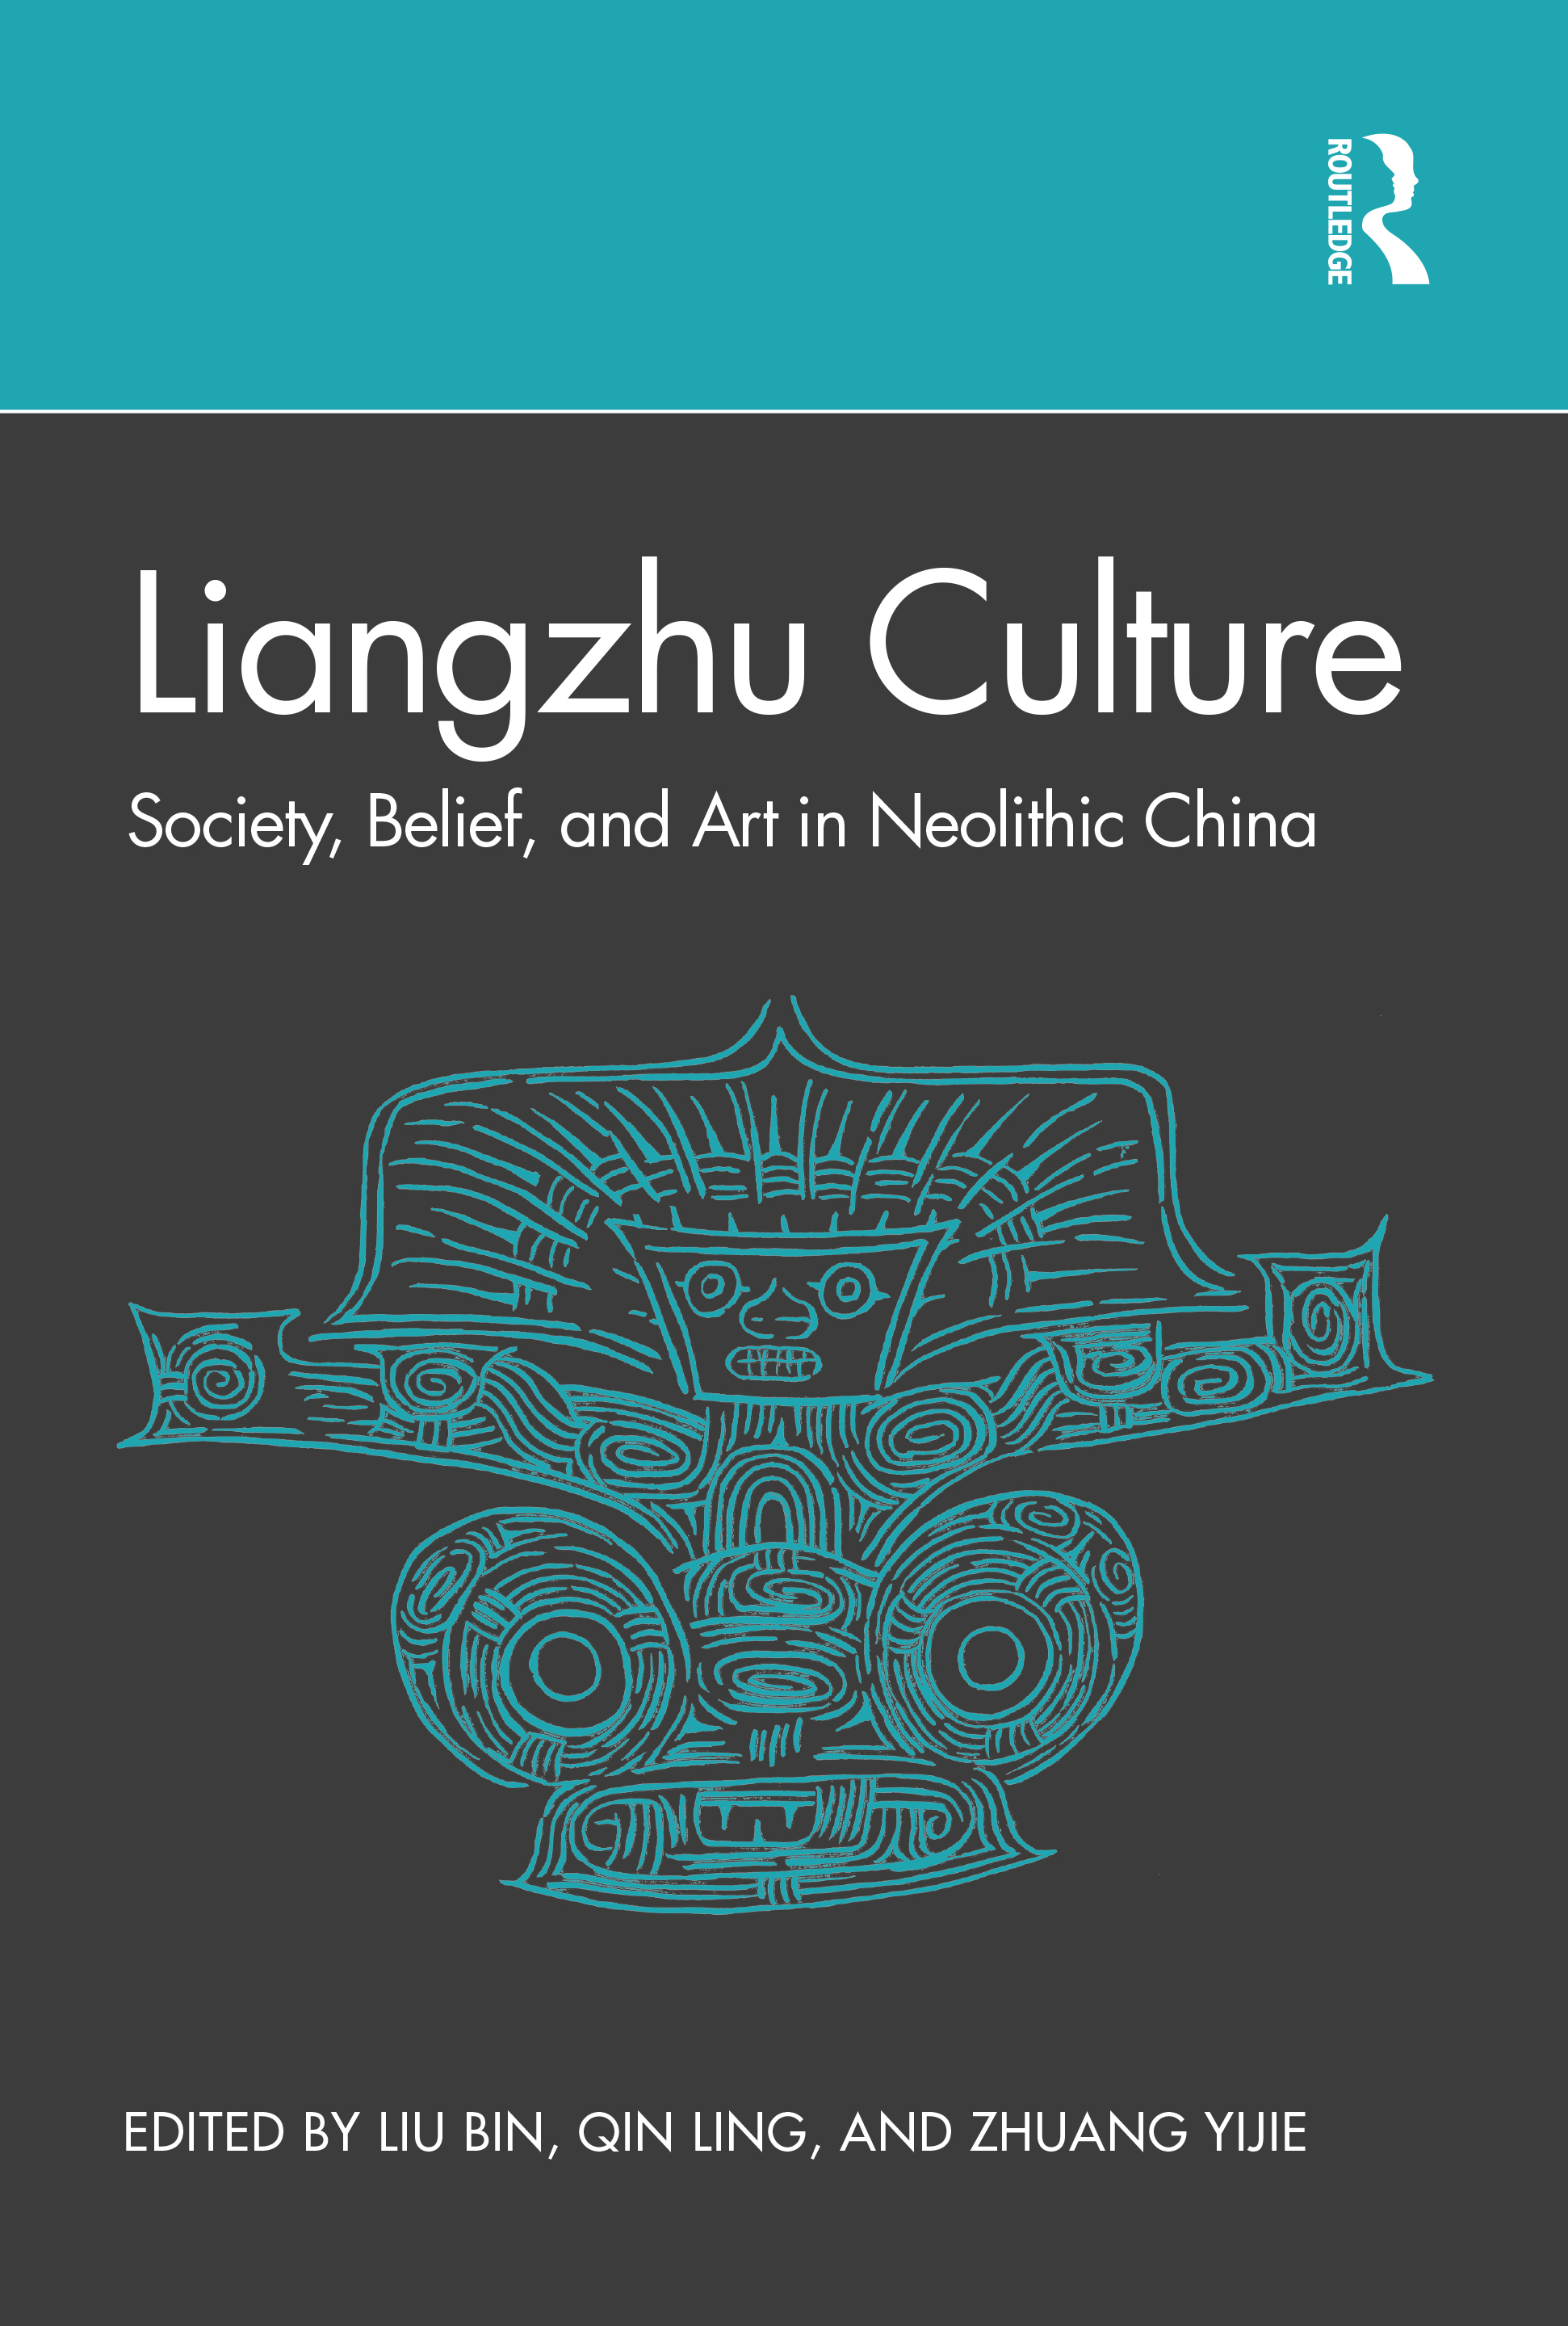 Liangzhu Culture: Society, Belief and Art in Neolithic China book cover